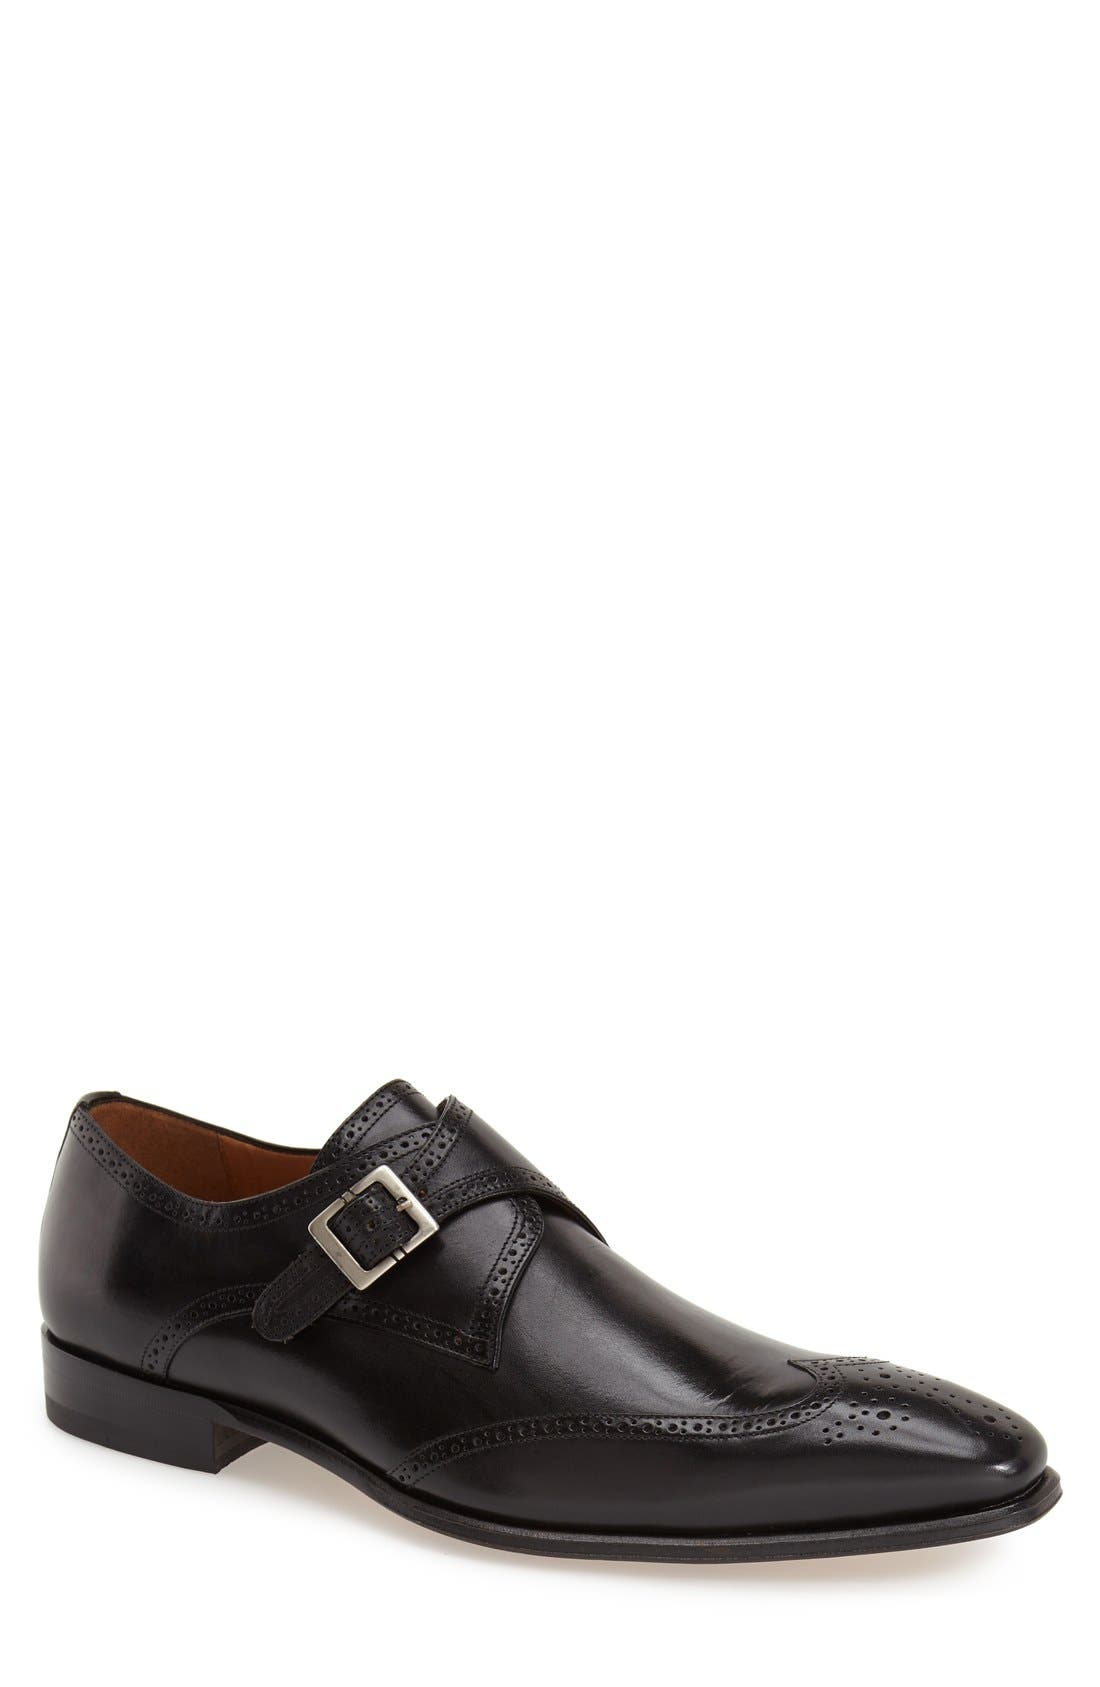 'Vitoria' Monk Strap Oxford,                         Main,                         color, BLACK LEATHER